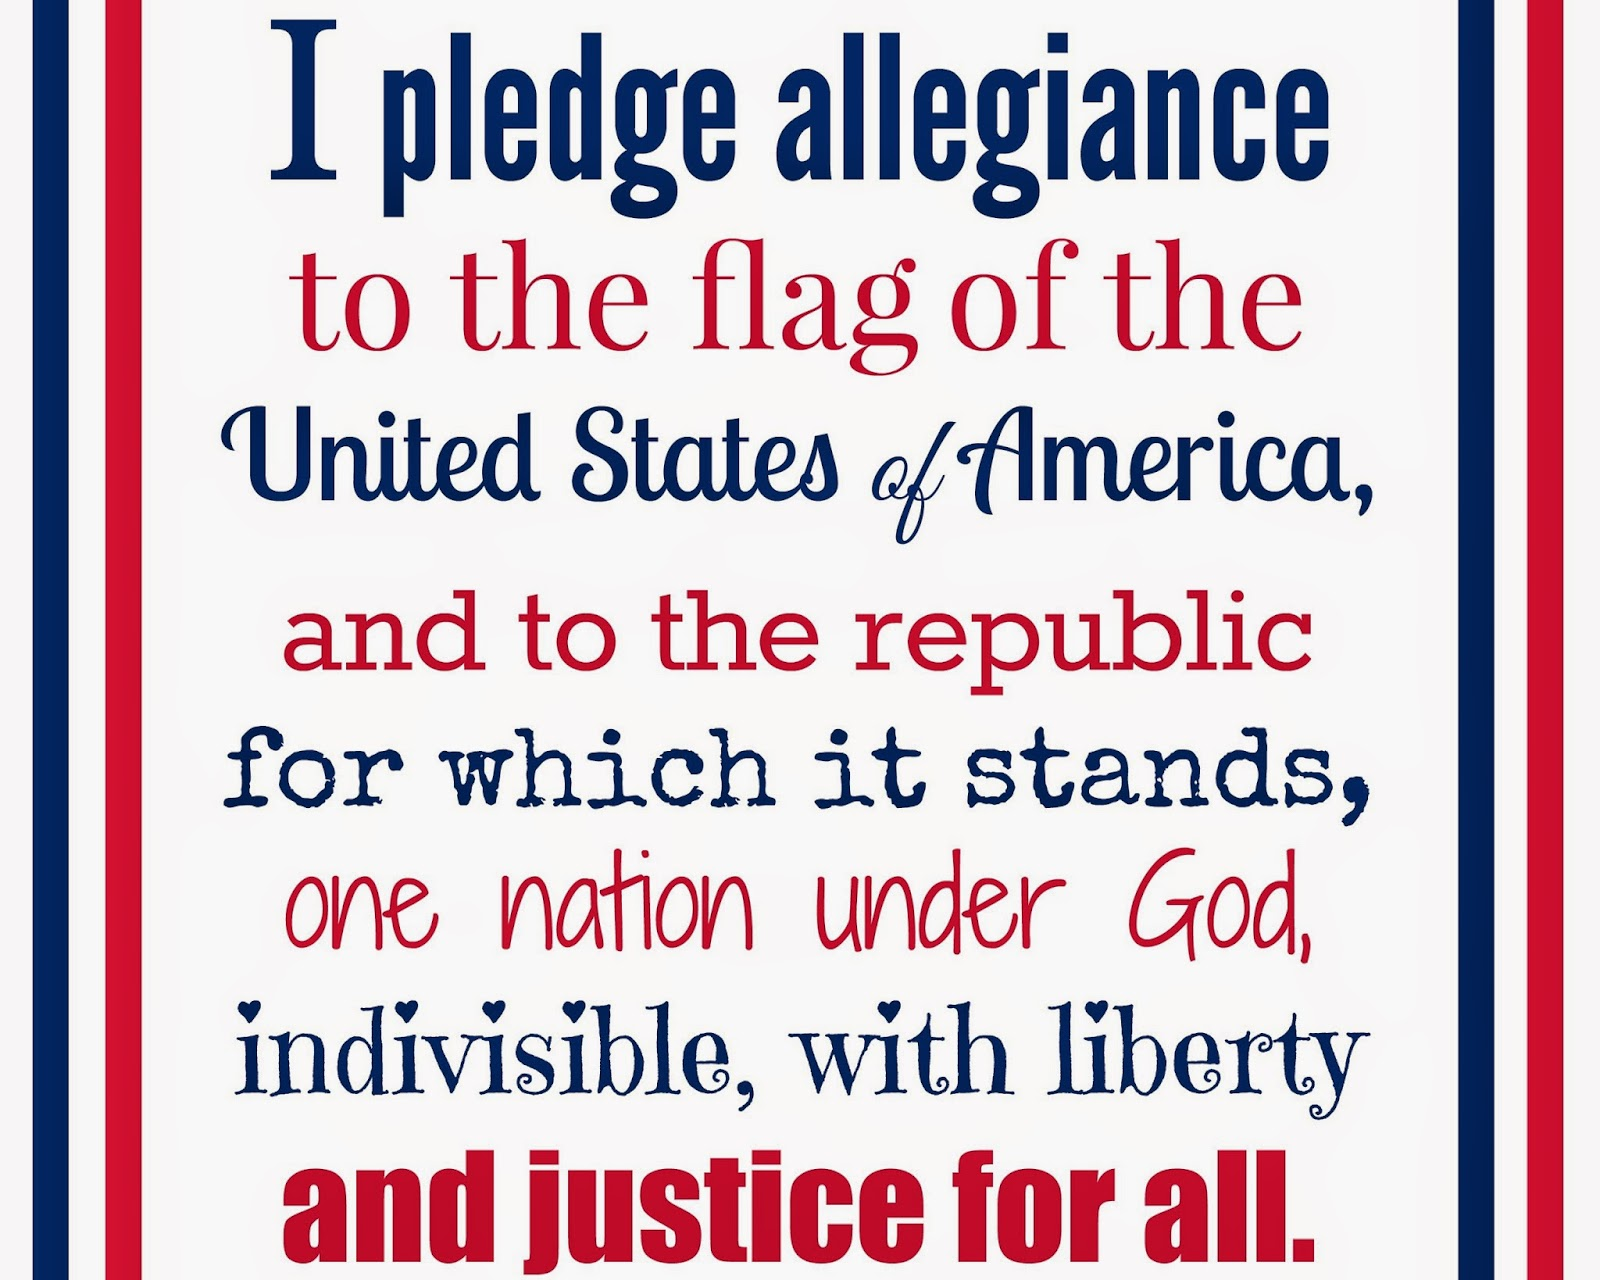 picture regarding Pledge of Allegiance Words Printable called A Lion VS The Hyenas The Very last Refuge